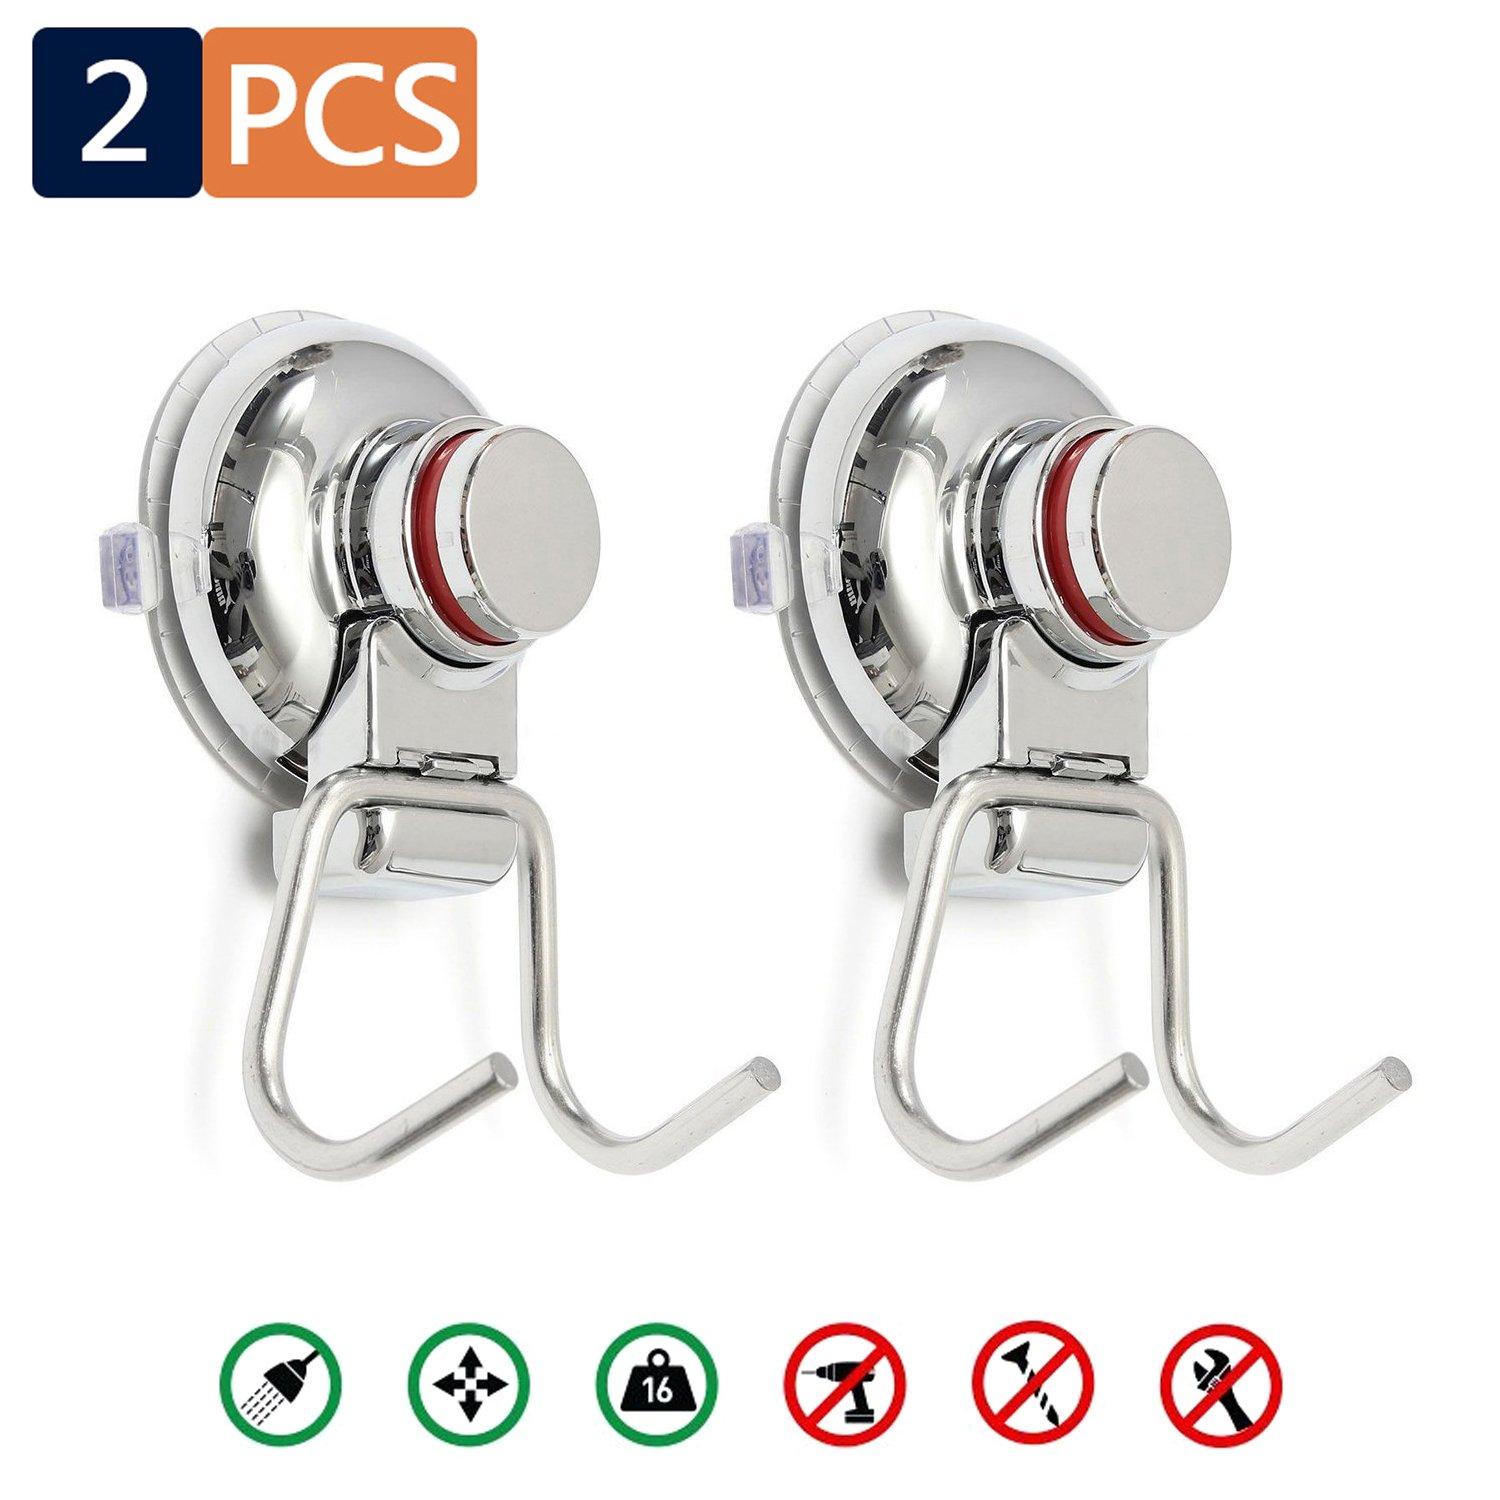 2PCS Suction Cups Vacuum Hook ,  Bathroom Shower Kitchen Removable Hanger Storage ,  - Organizer For Towel , Coat , Bathrobe And Loofah ,  Stainless Steel Wall Surface Holder For Office ,  Livingroom